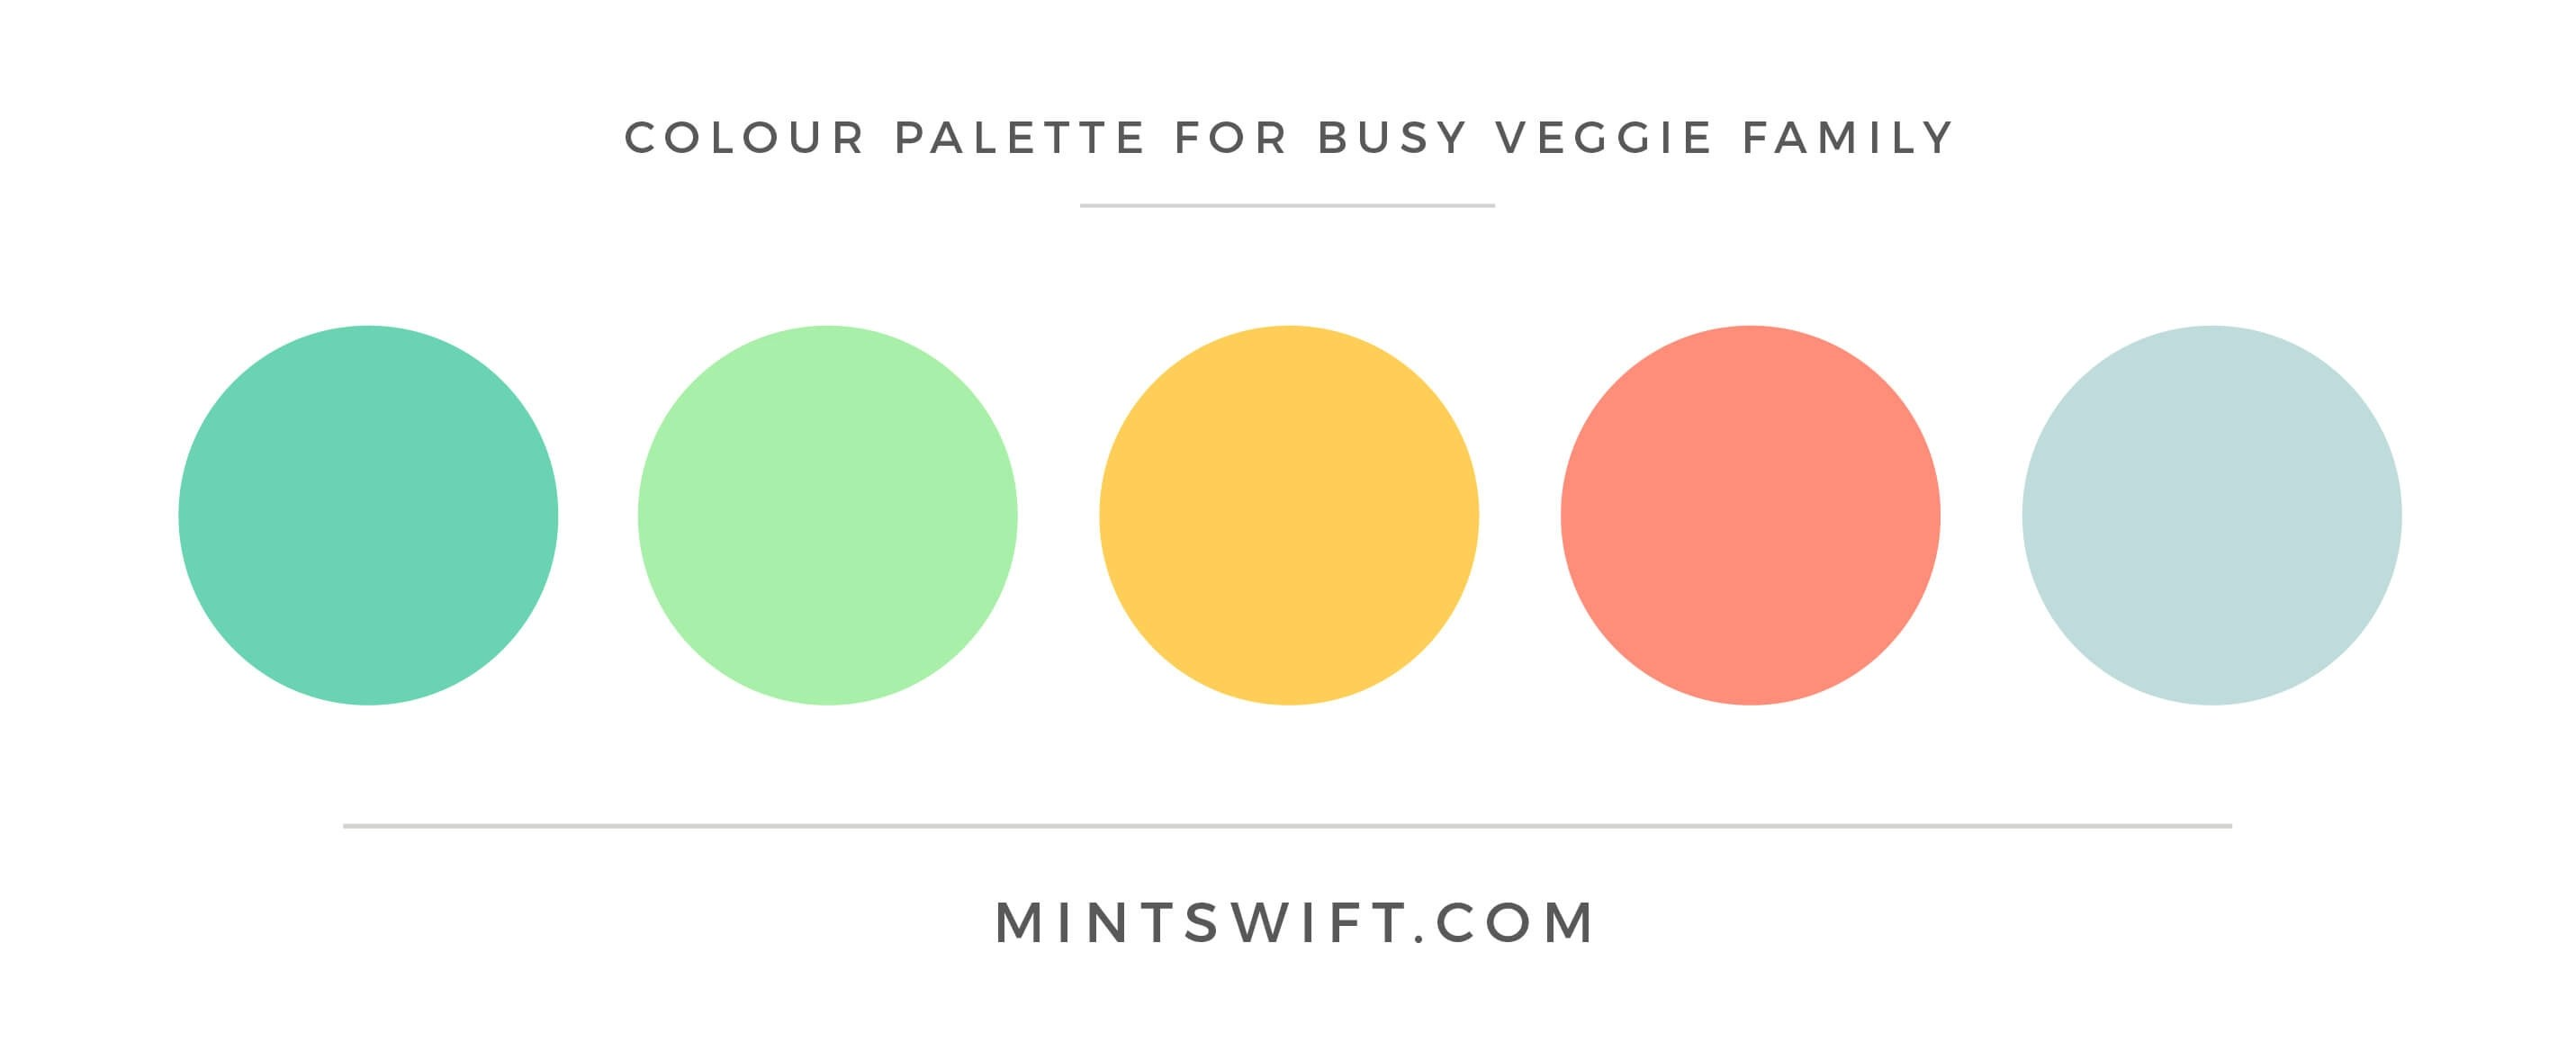 Busy Veggie Family - Colour Palette - Brand & Website Design Package - MintSwift